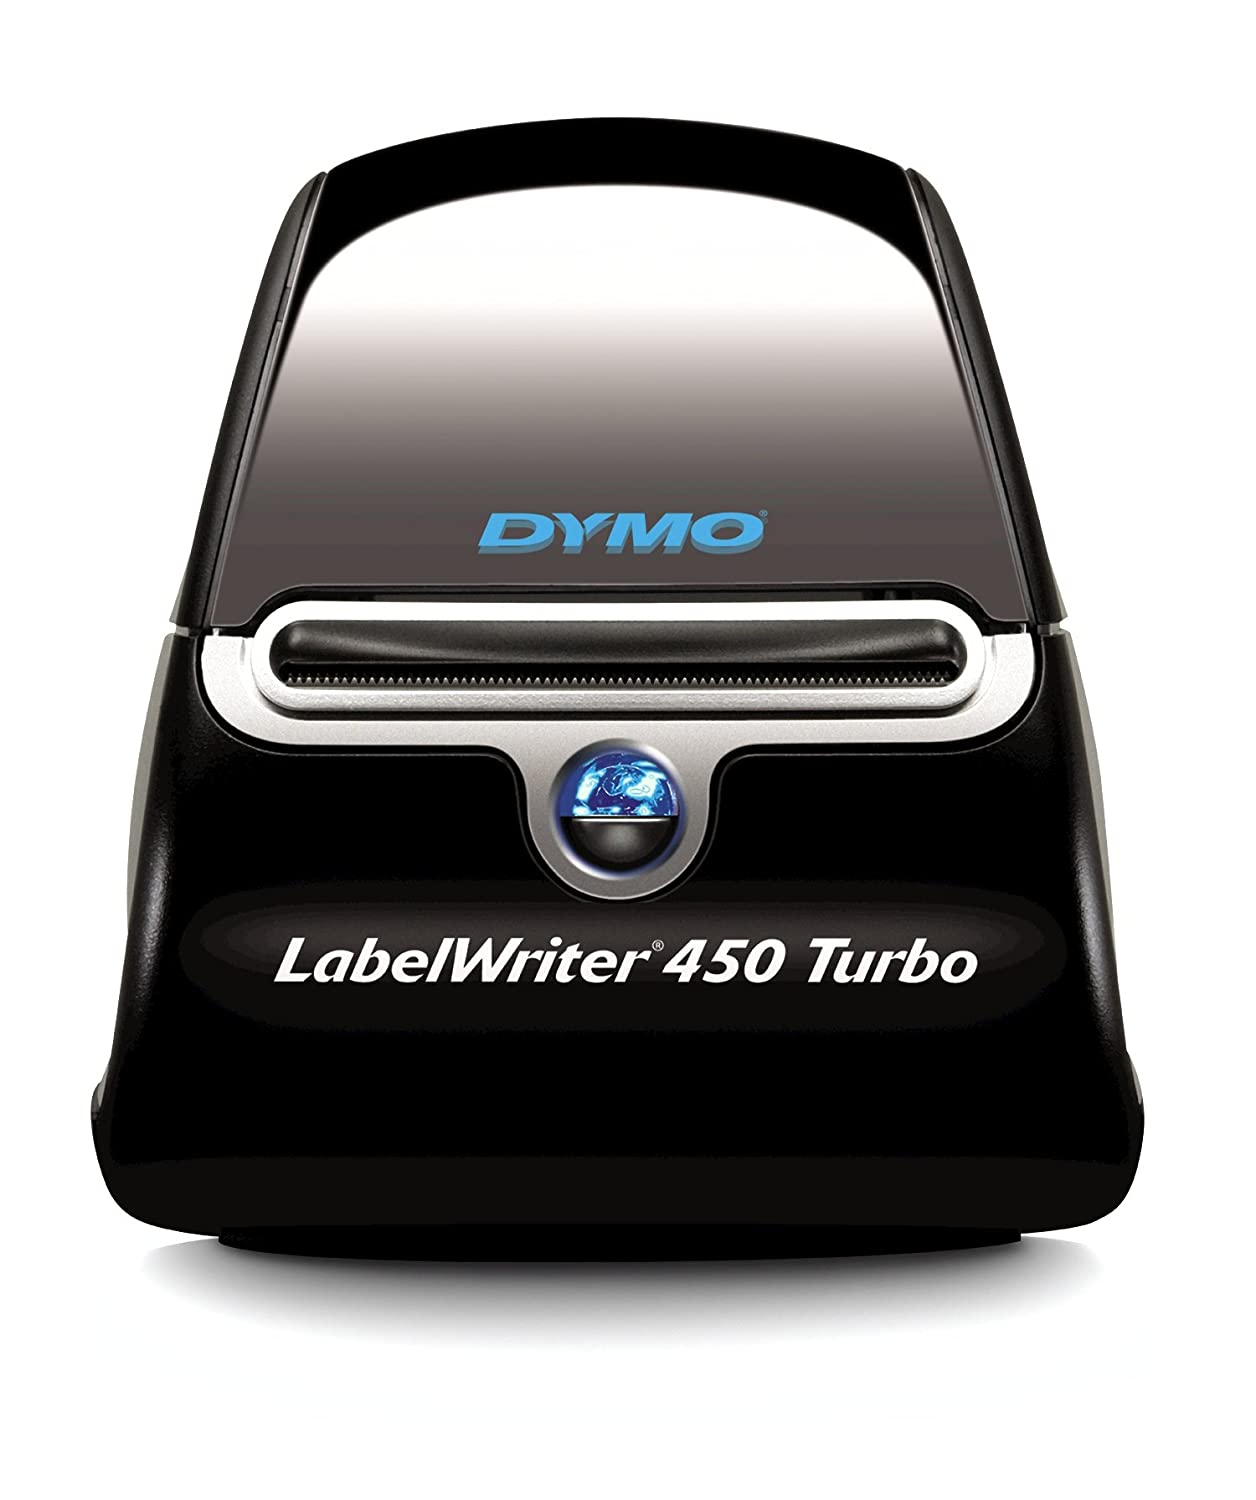 Dymo LabelWriter 450 Turbo Label Maker and 4 x Roll of 260 LabelWriter Large Address Labels of 36 x 89 mm - Black on White